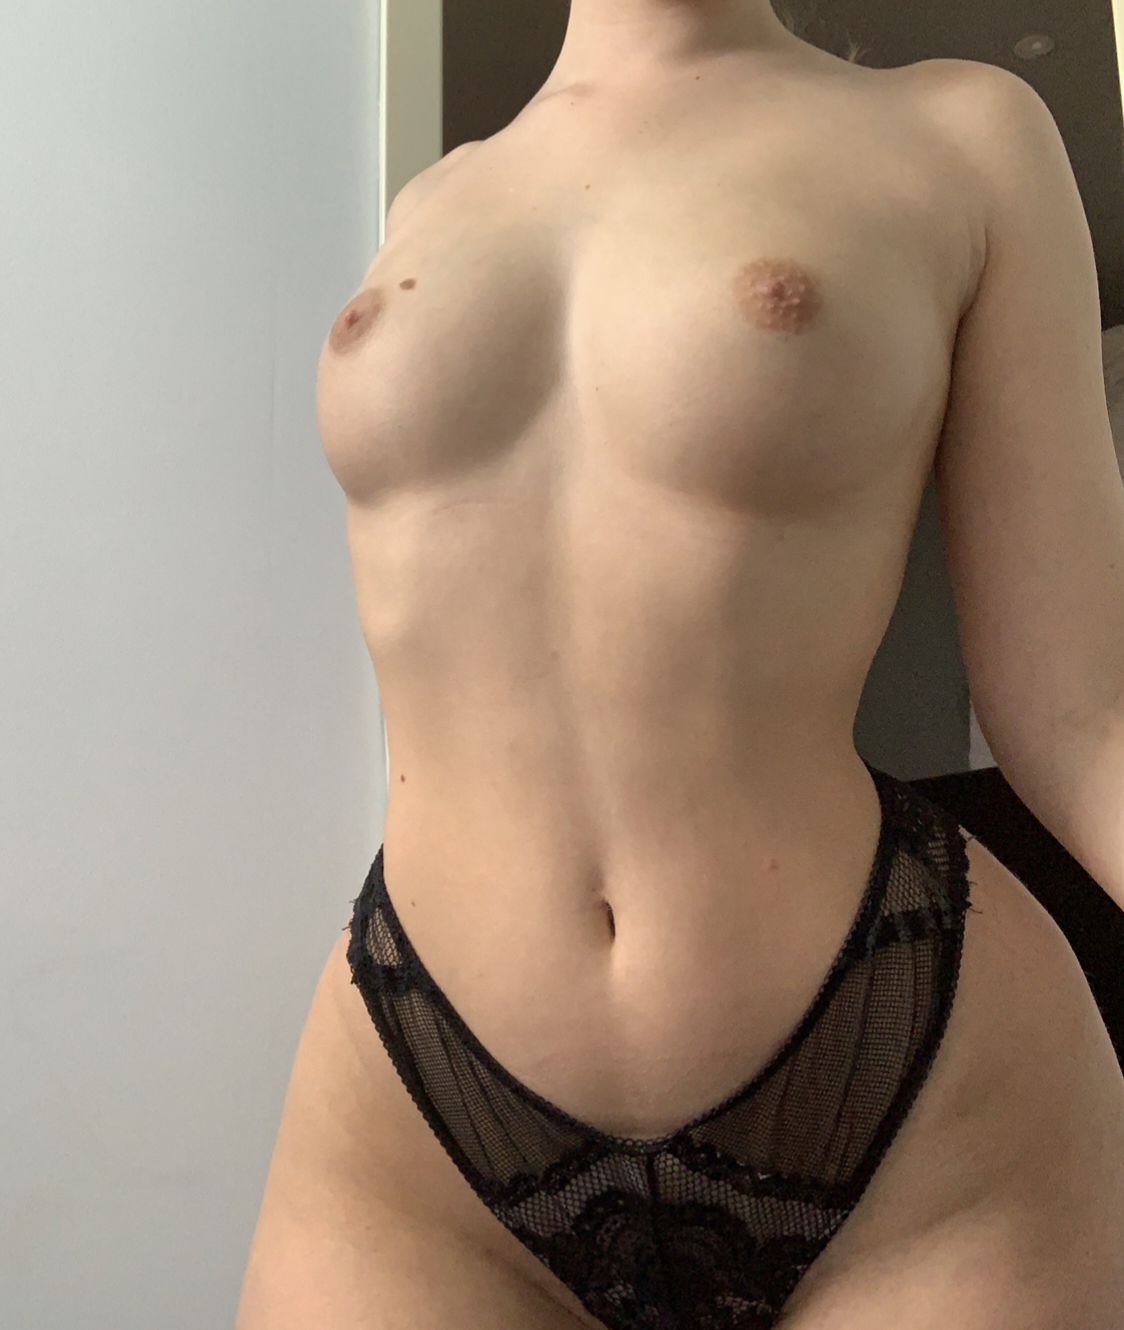 Just My Boobs After Gym 💕